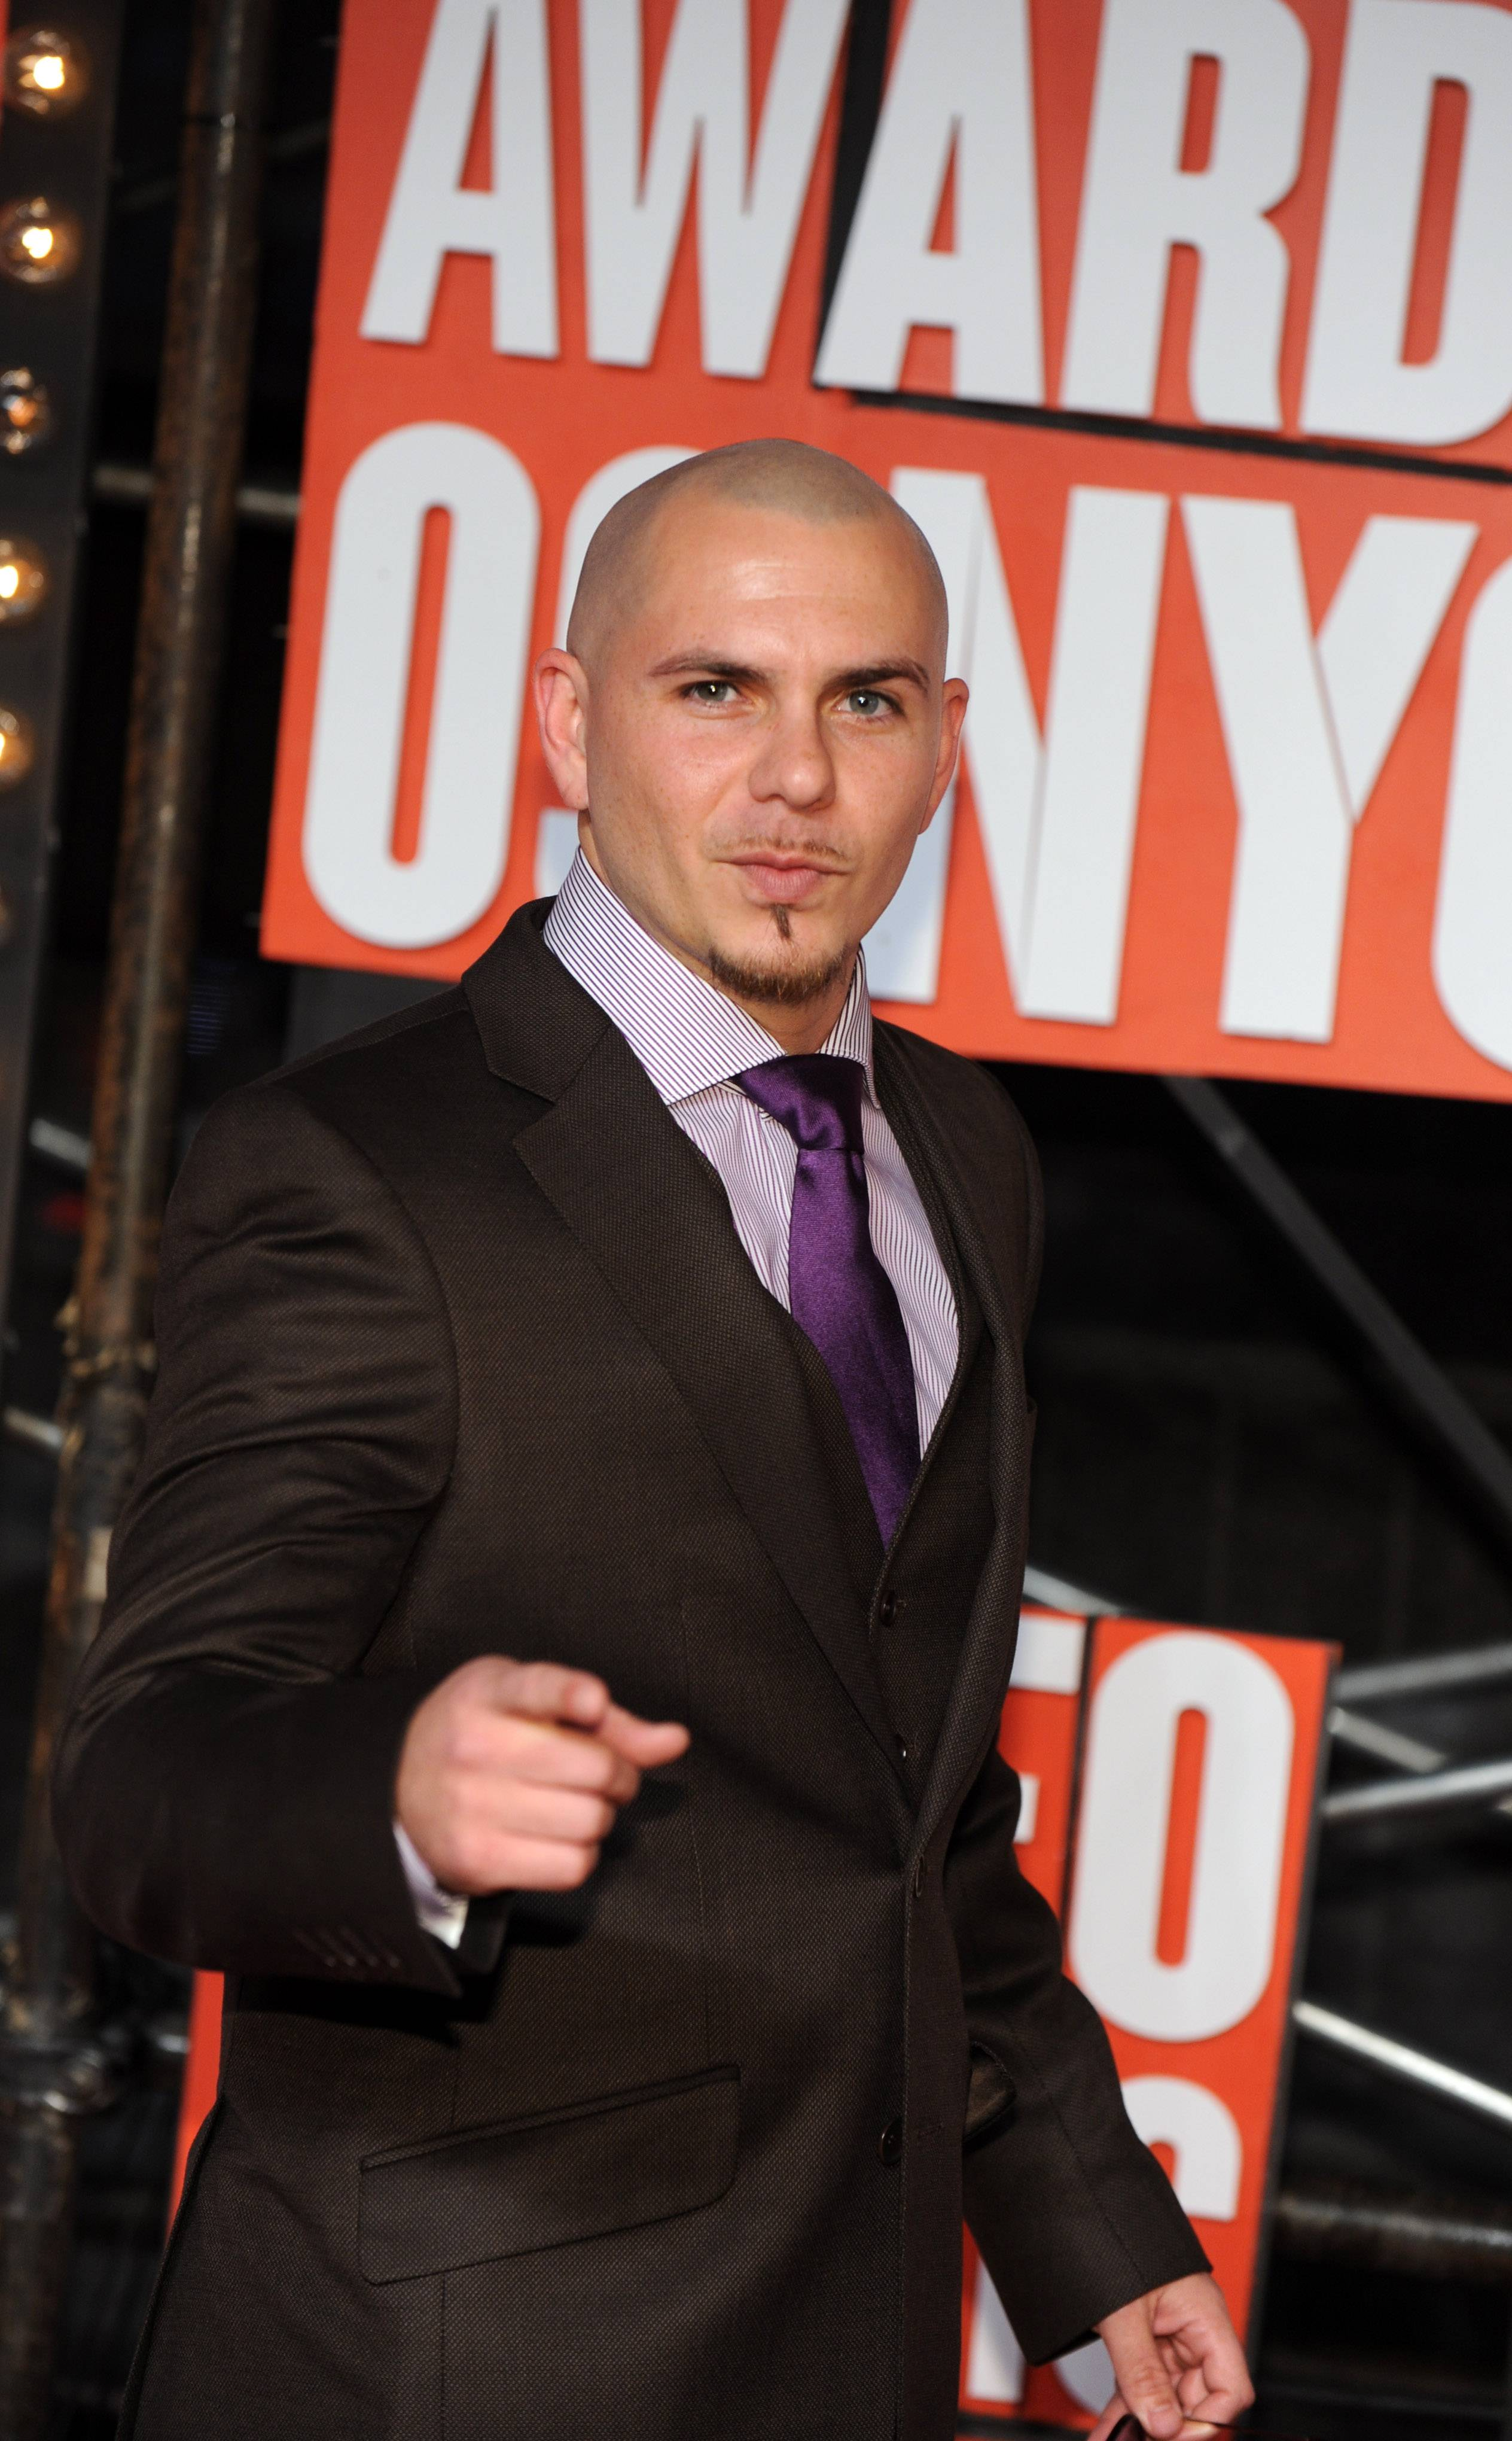 Hip-hop artist Pitbull will perform Aug. 9 at the Illinois State Fair in Springfield.